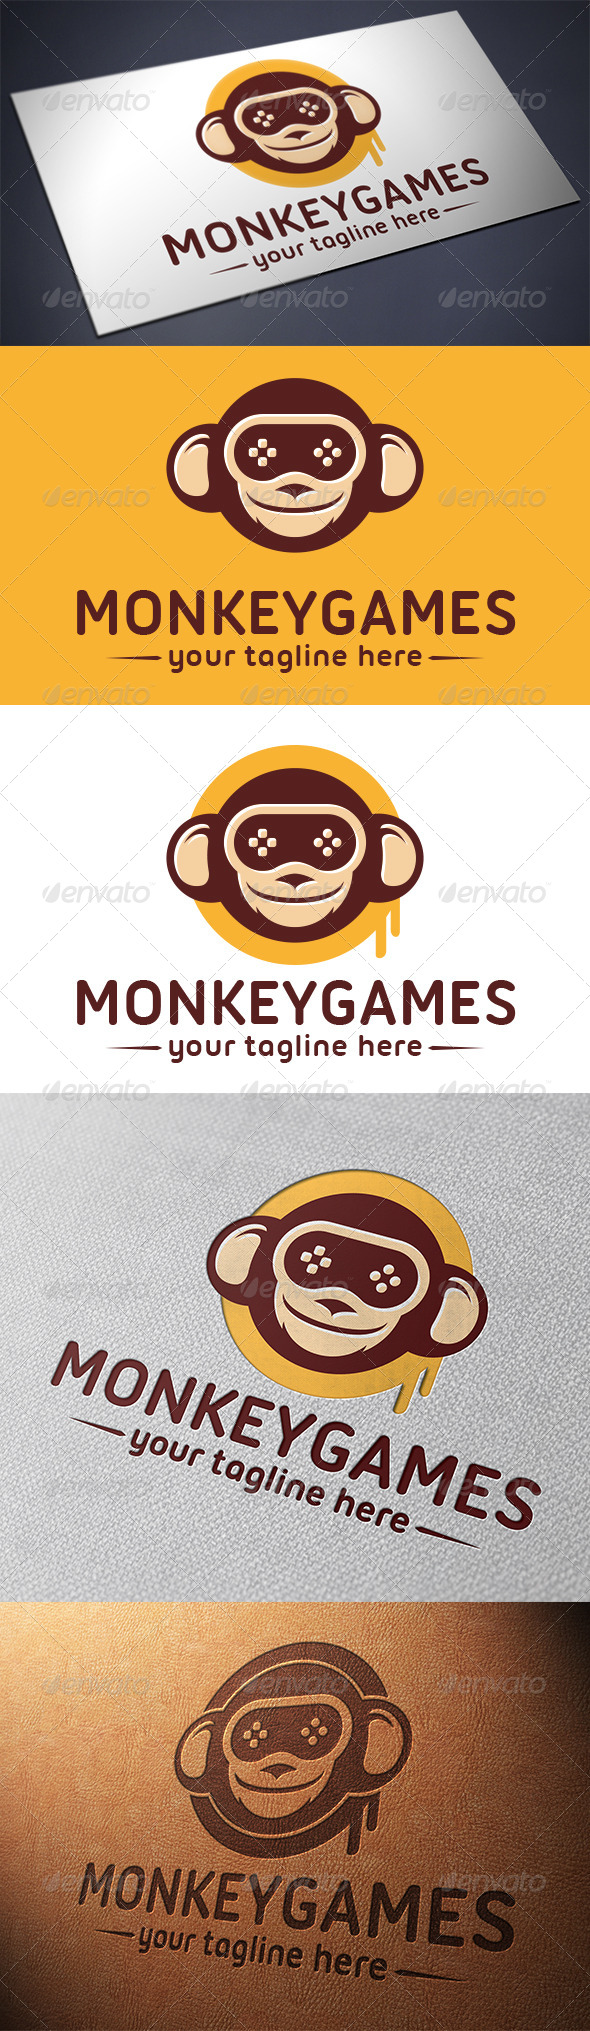 Monkey Game Logo Template